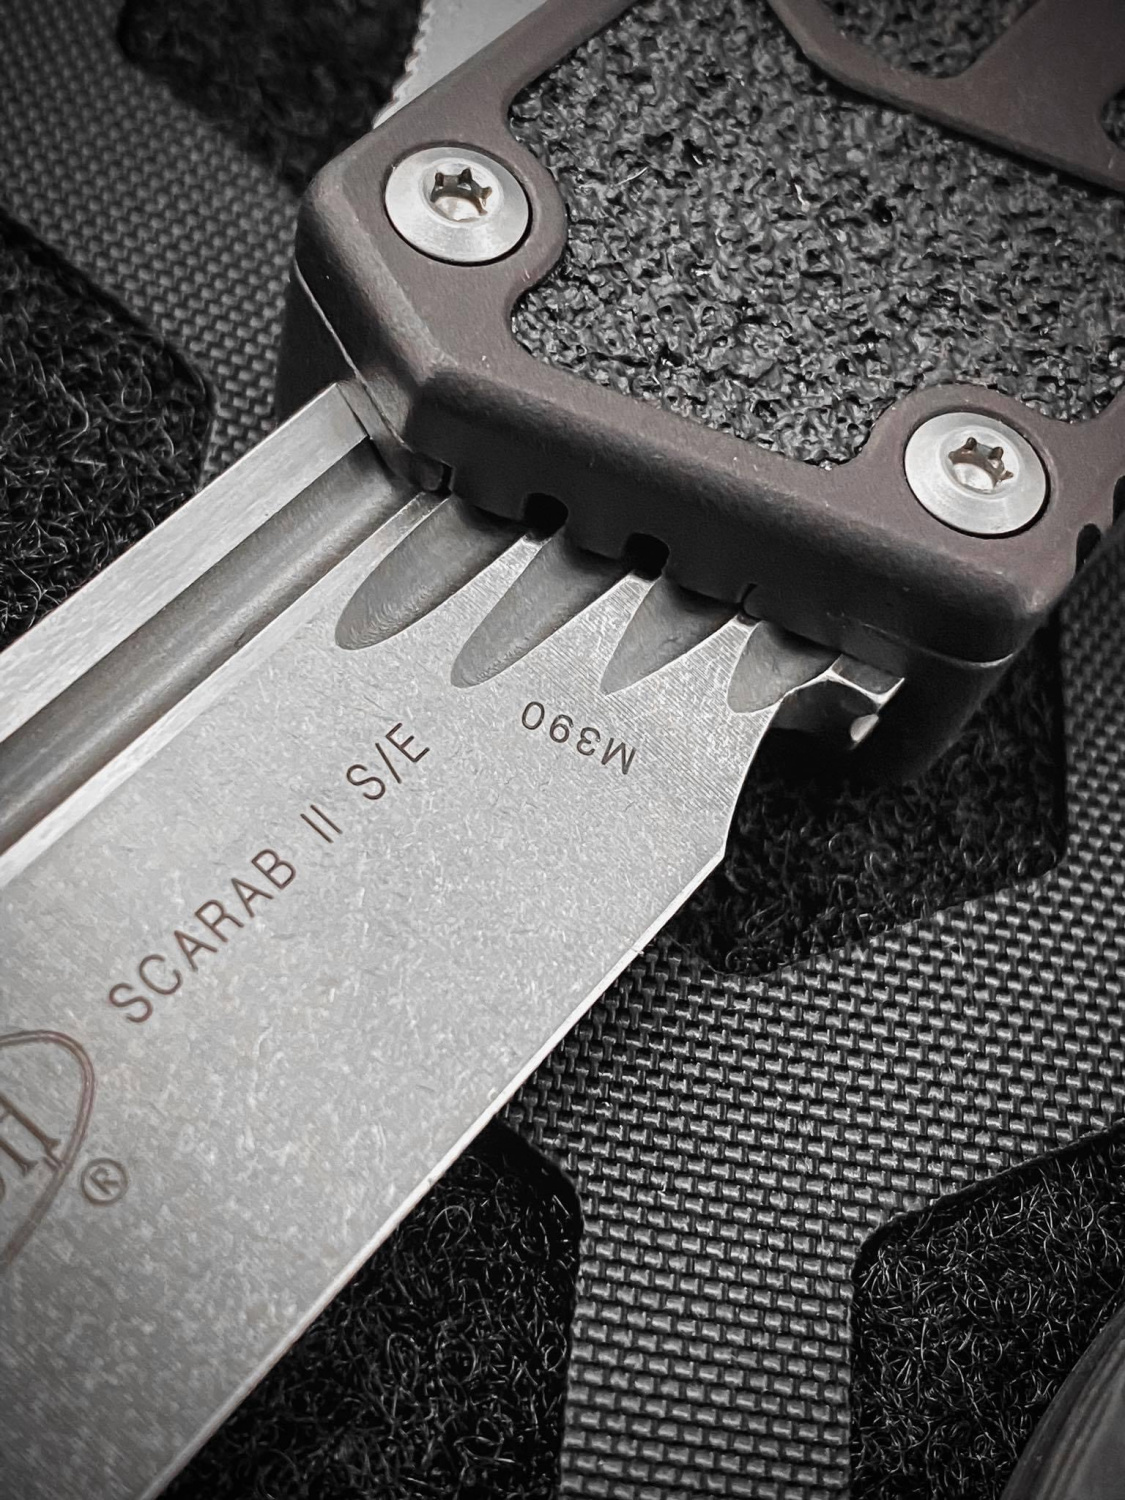 Scarab II and Mini Troodon - The New Automatic Knives From Microtech -